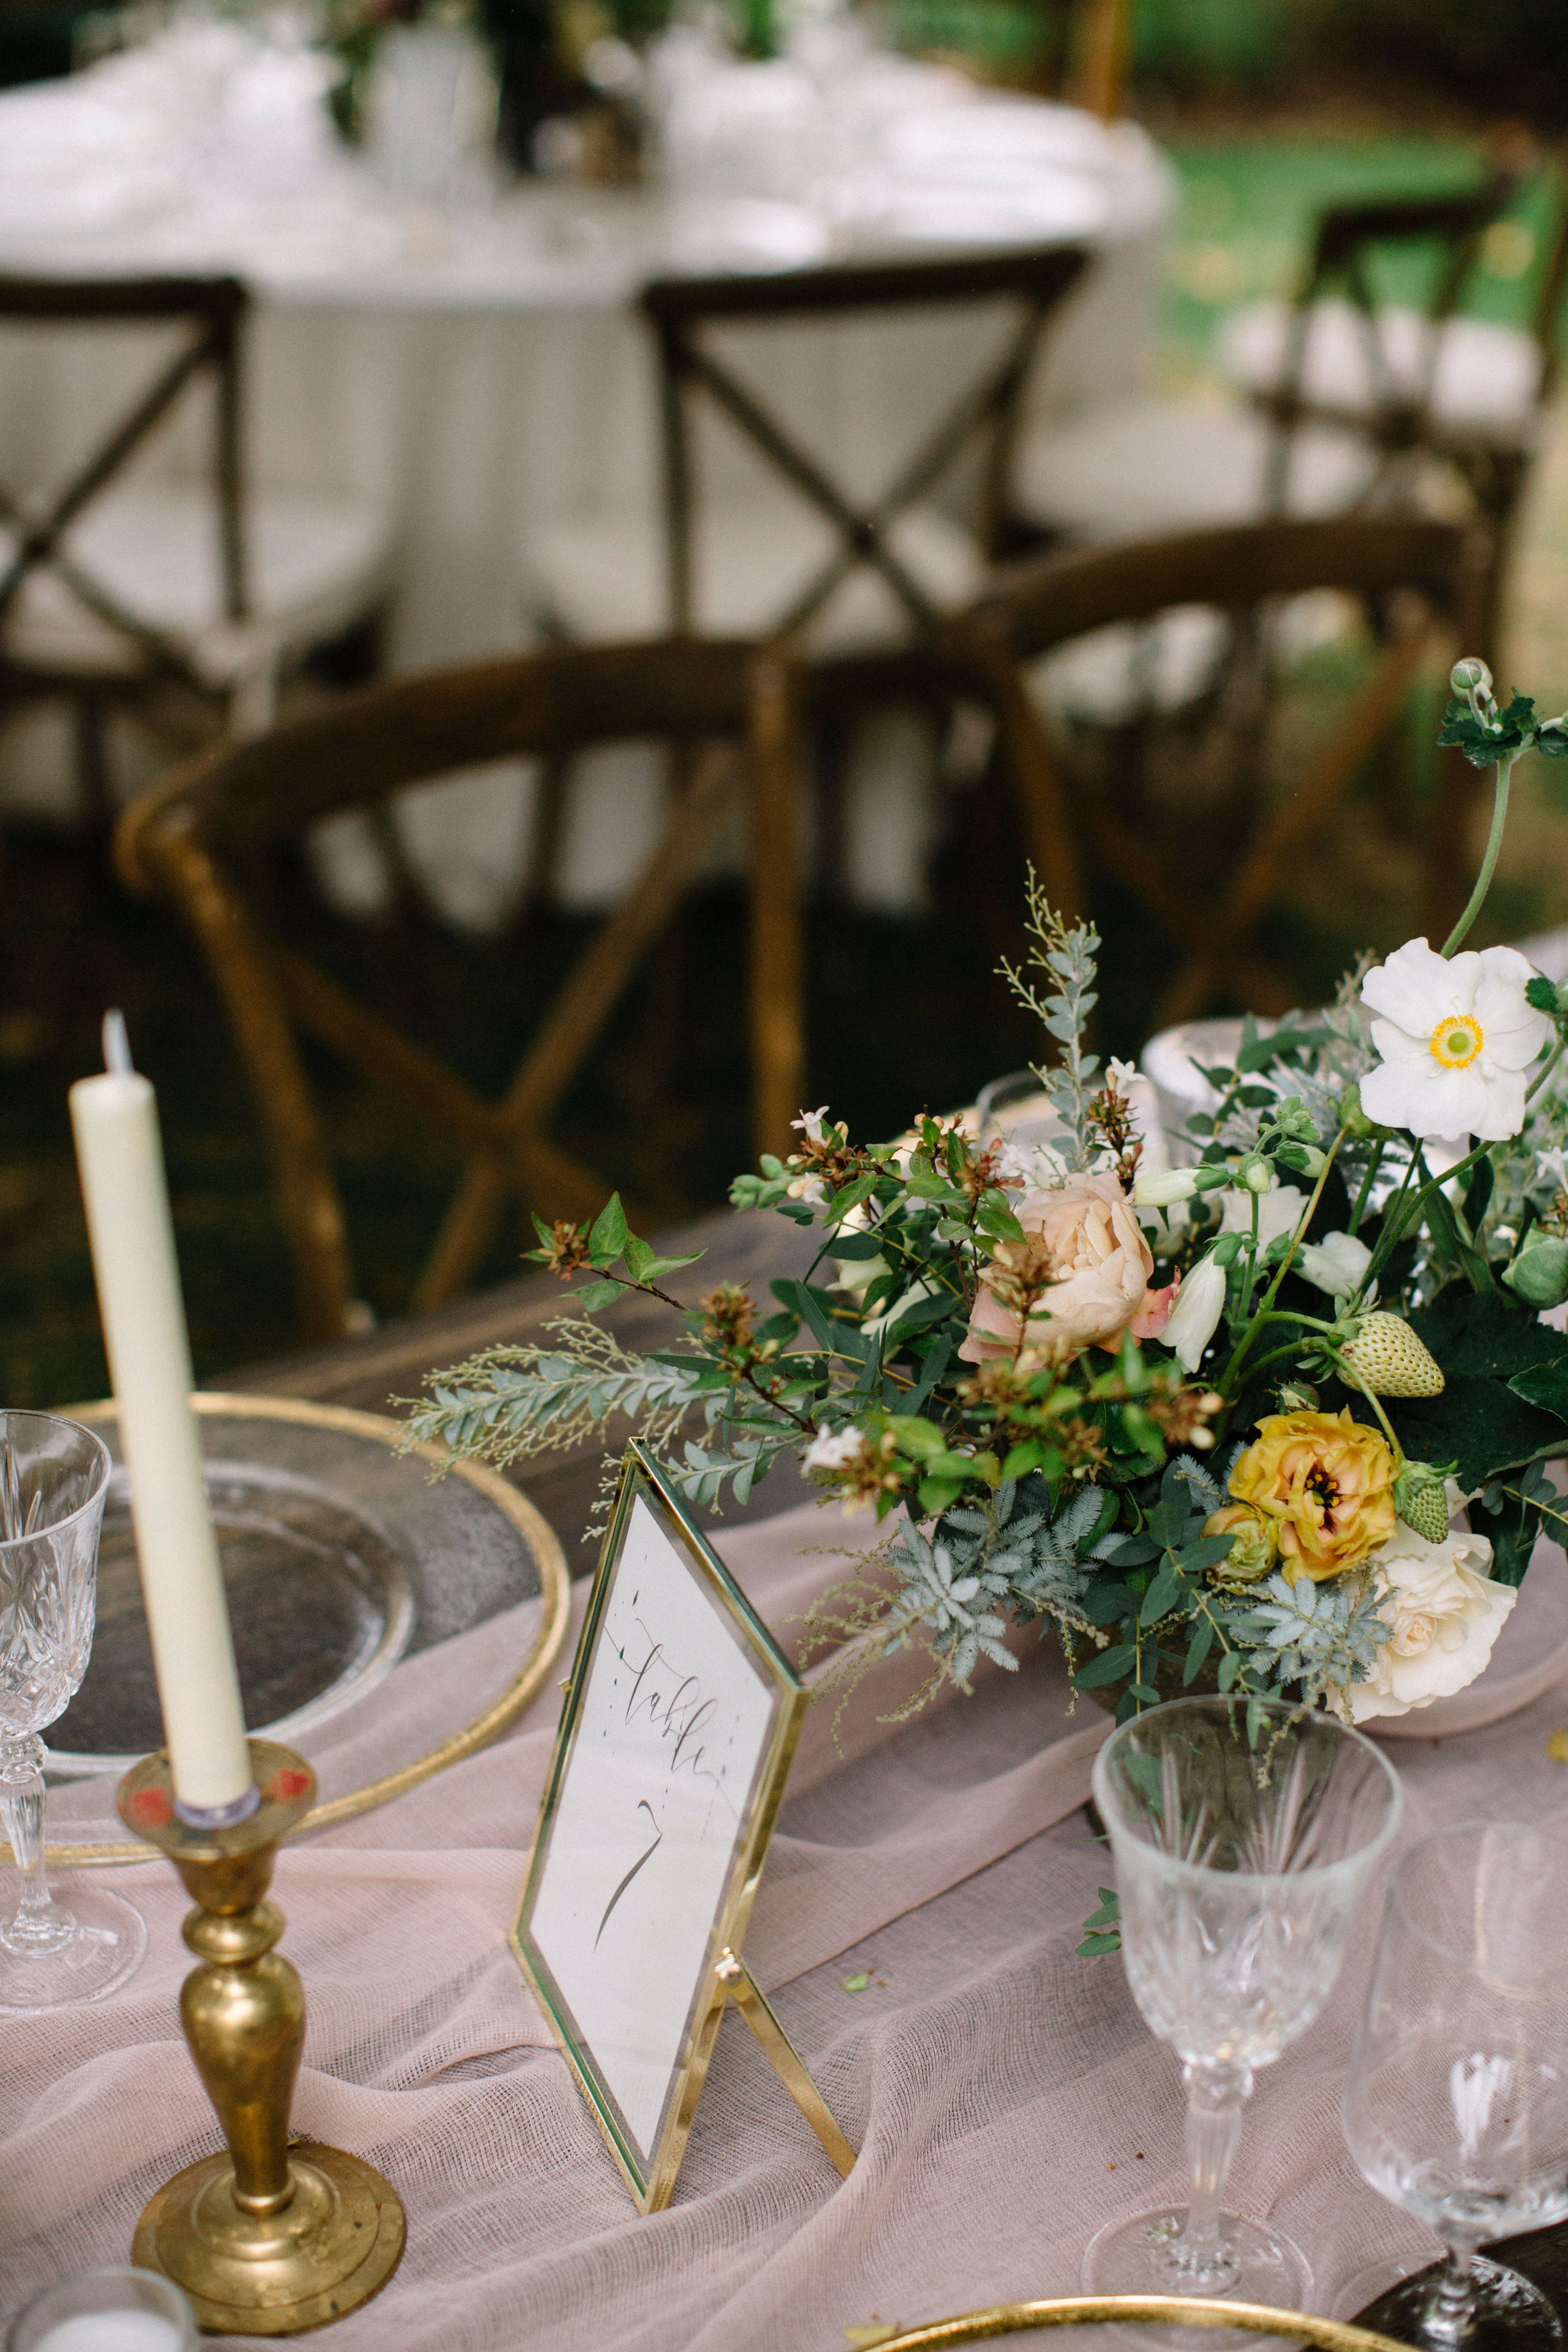 Elegant wild centerpiece with taper candles and vintage glassware by Venn Floral photographed by Lucille Lawrence in Healdsburg, California.